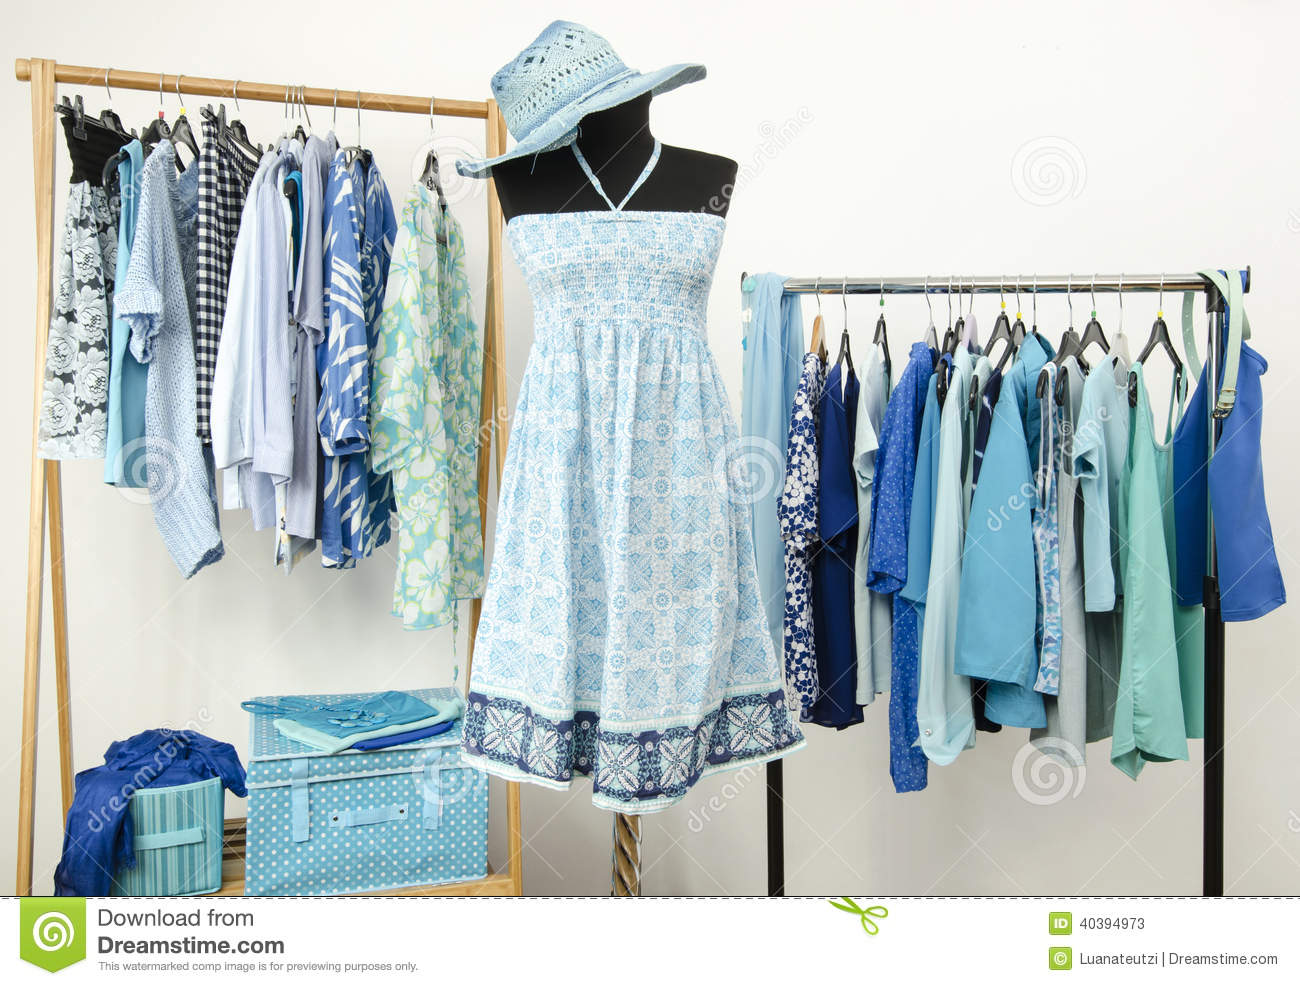 Wardrobe Full Of All Shades Of Blue Clothes And Accessories Stock Image Image Of Colorful Interior 40394973